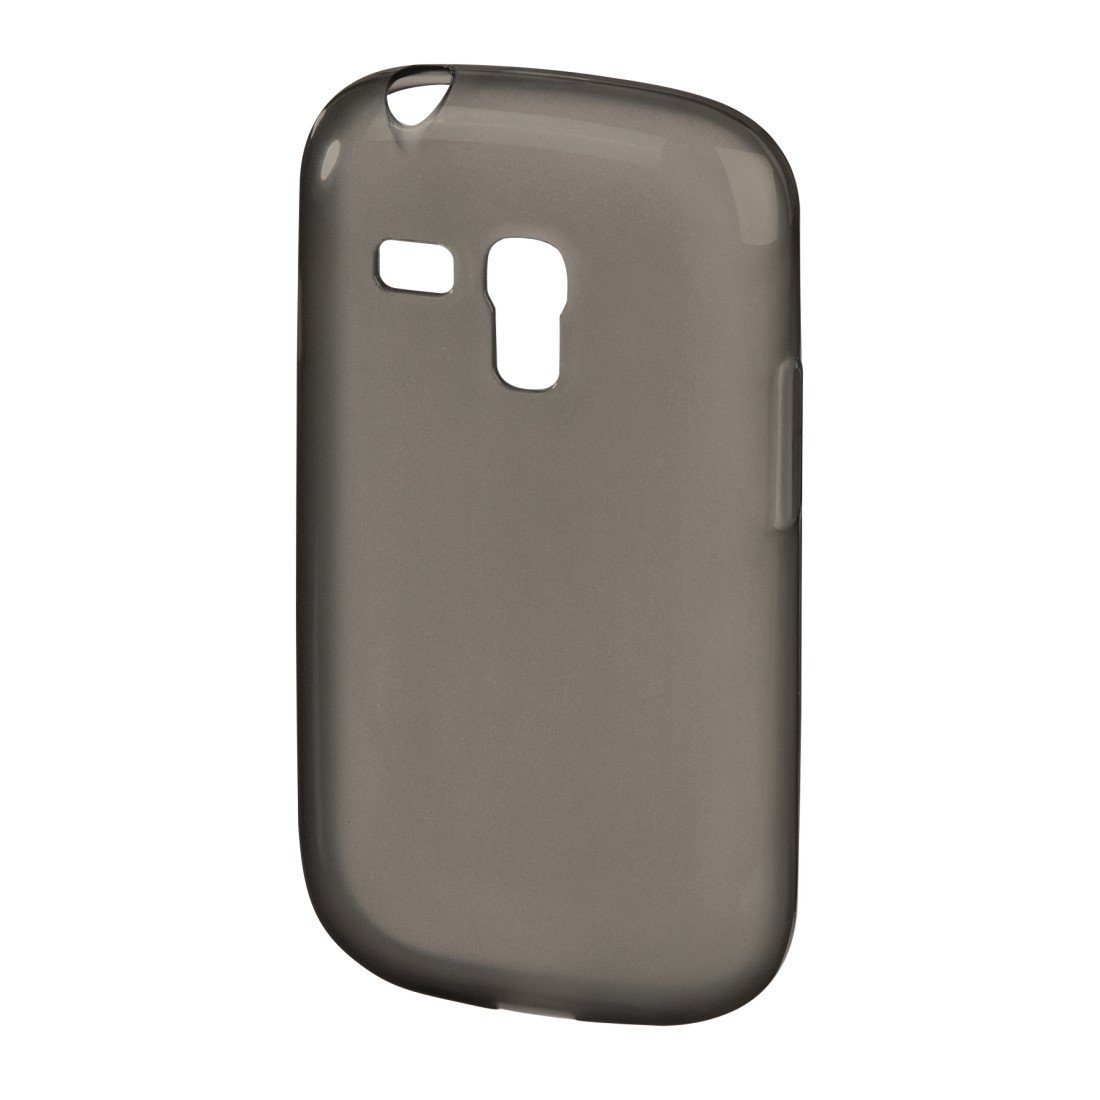 Hama Handy-Cover Crystal für Samsung Galaxy S III mini, Grau